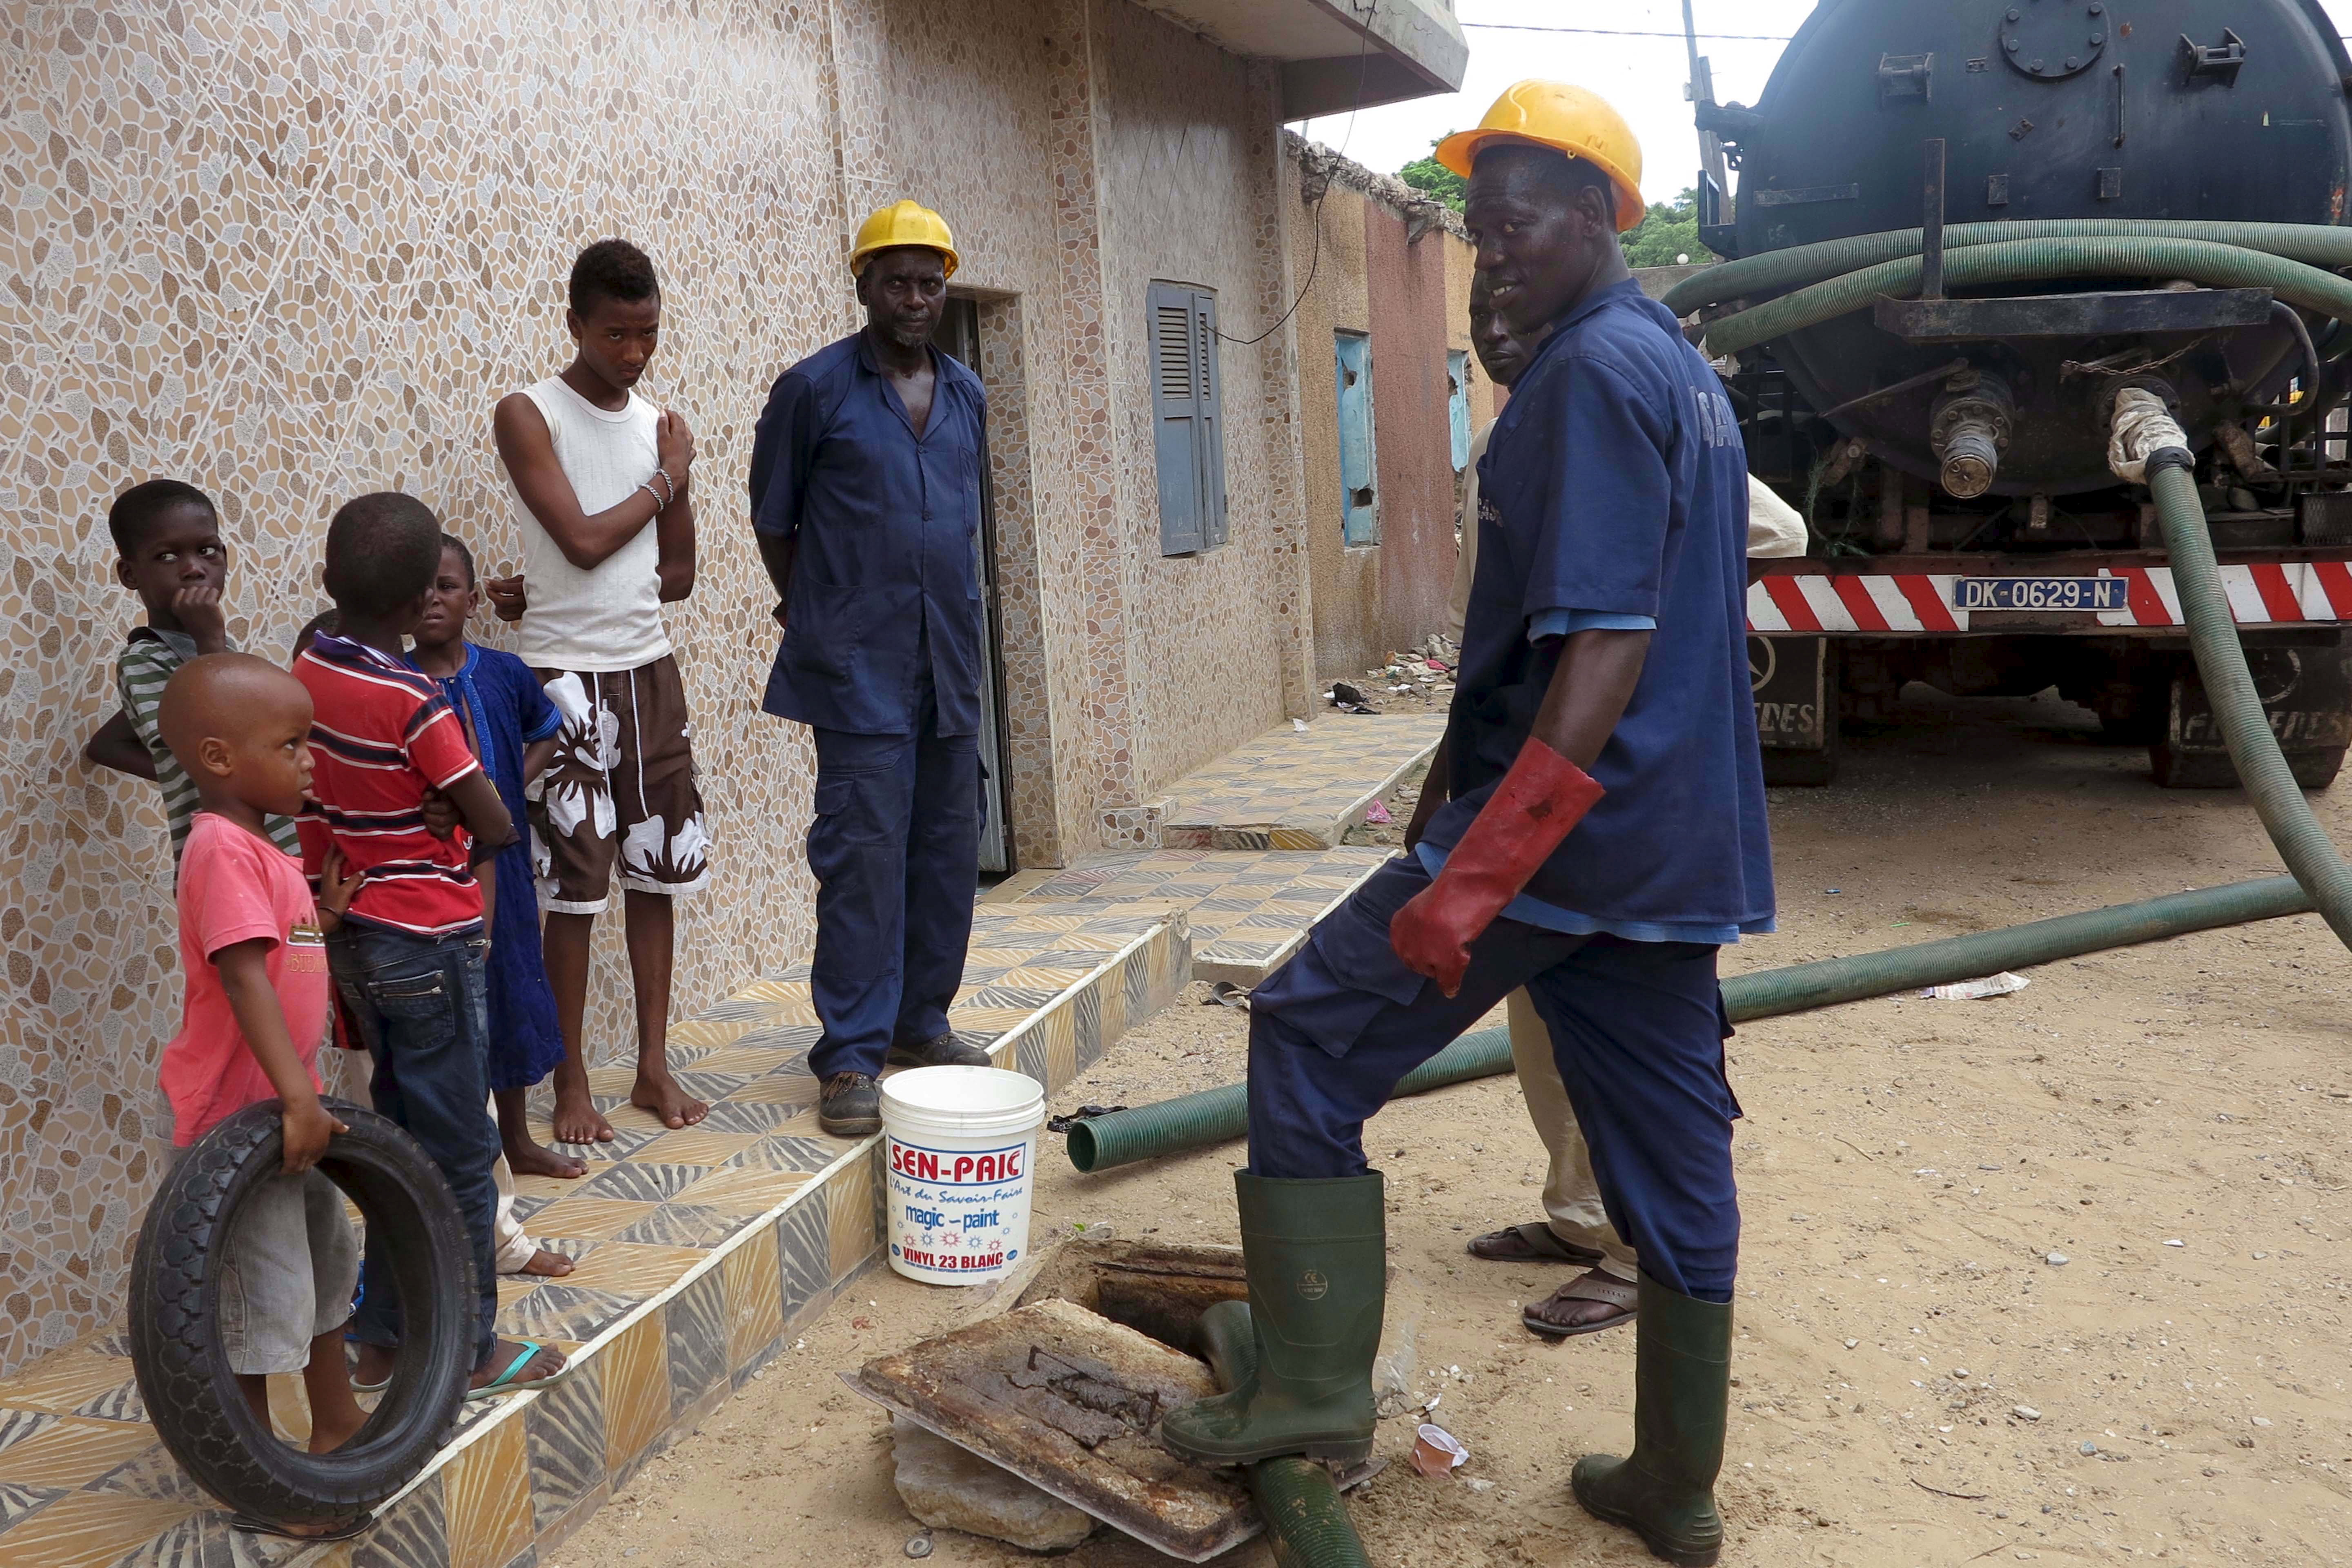 FILE - Sanitation workers removes septic waste from a house in Guediawaye, Senegal, Aug. 19, 2015. Government and charitable organizations are installing new toilets that turn waste into compost or break down matter with worms in bid to lower health ...